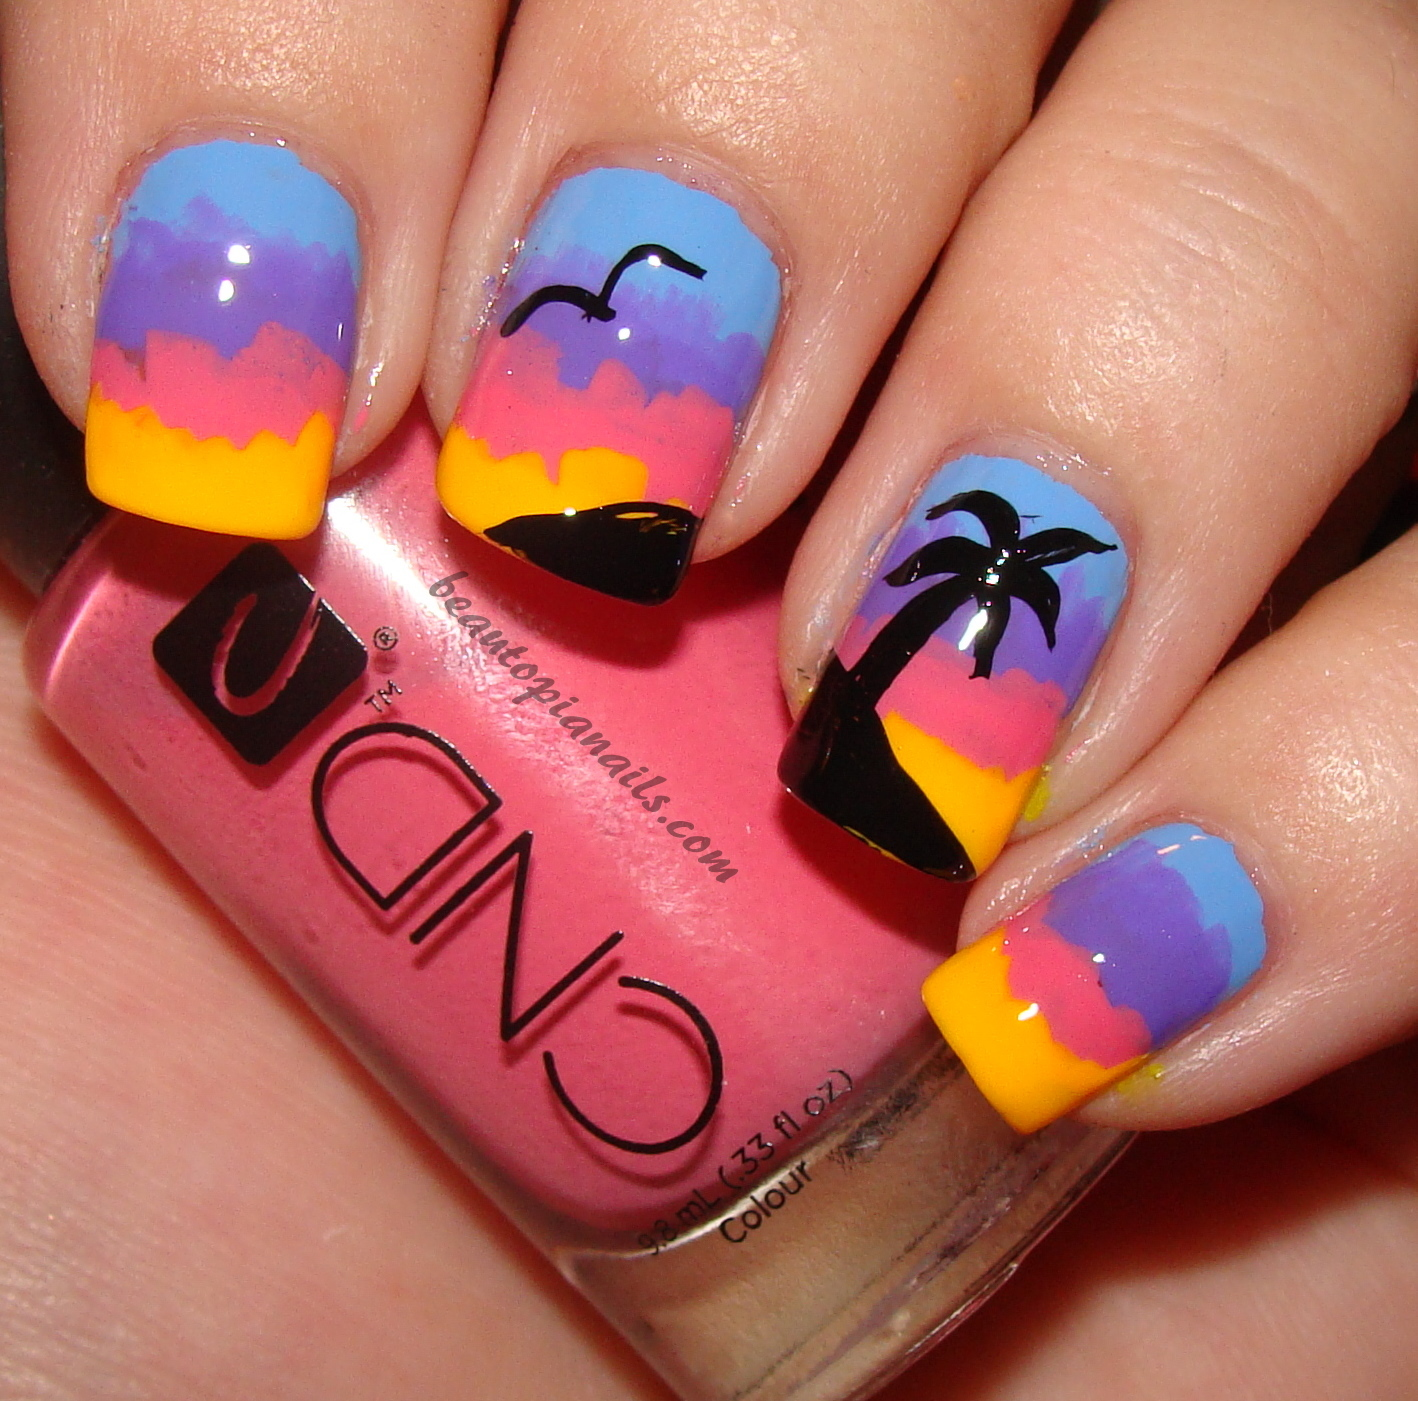 Source - 20 Sunset Nail Design Ideas